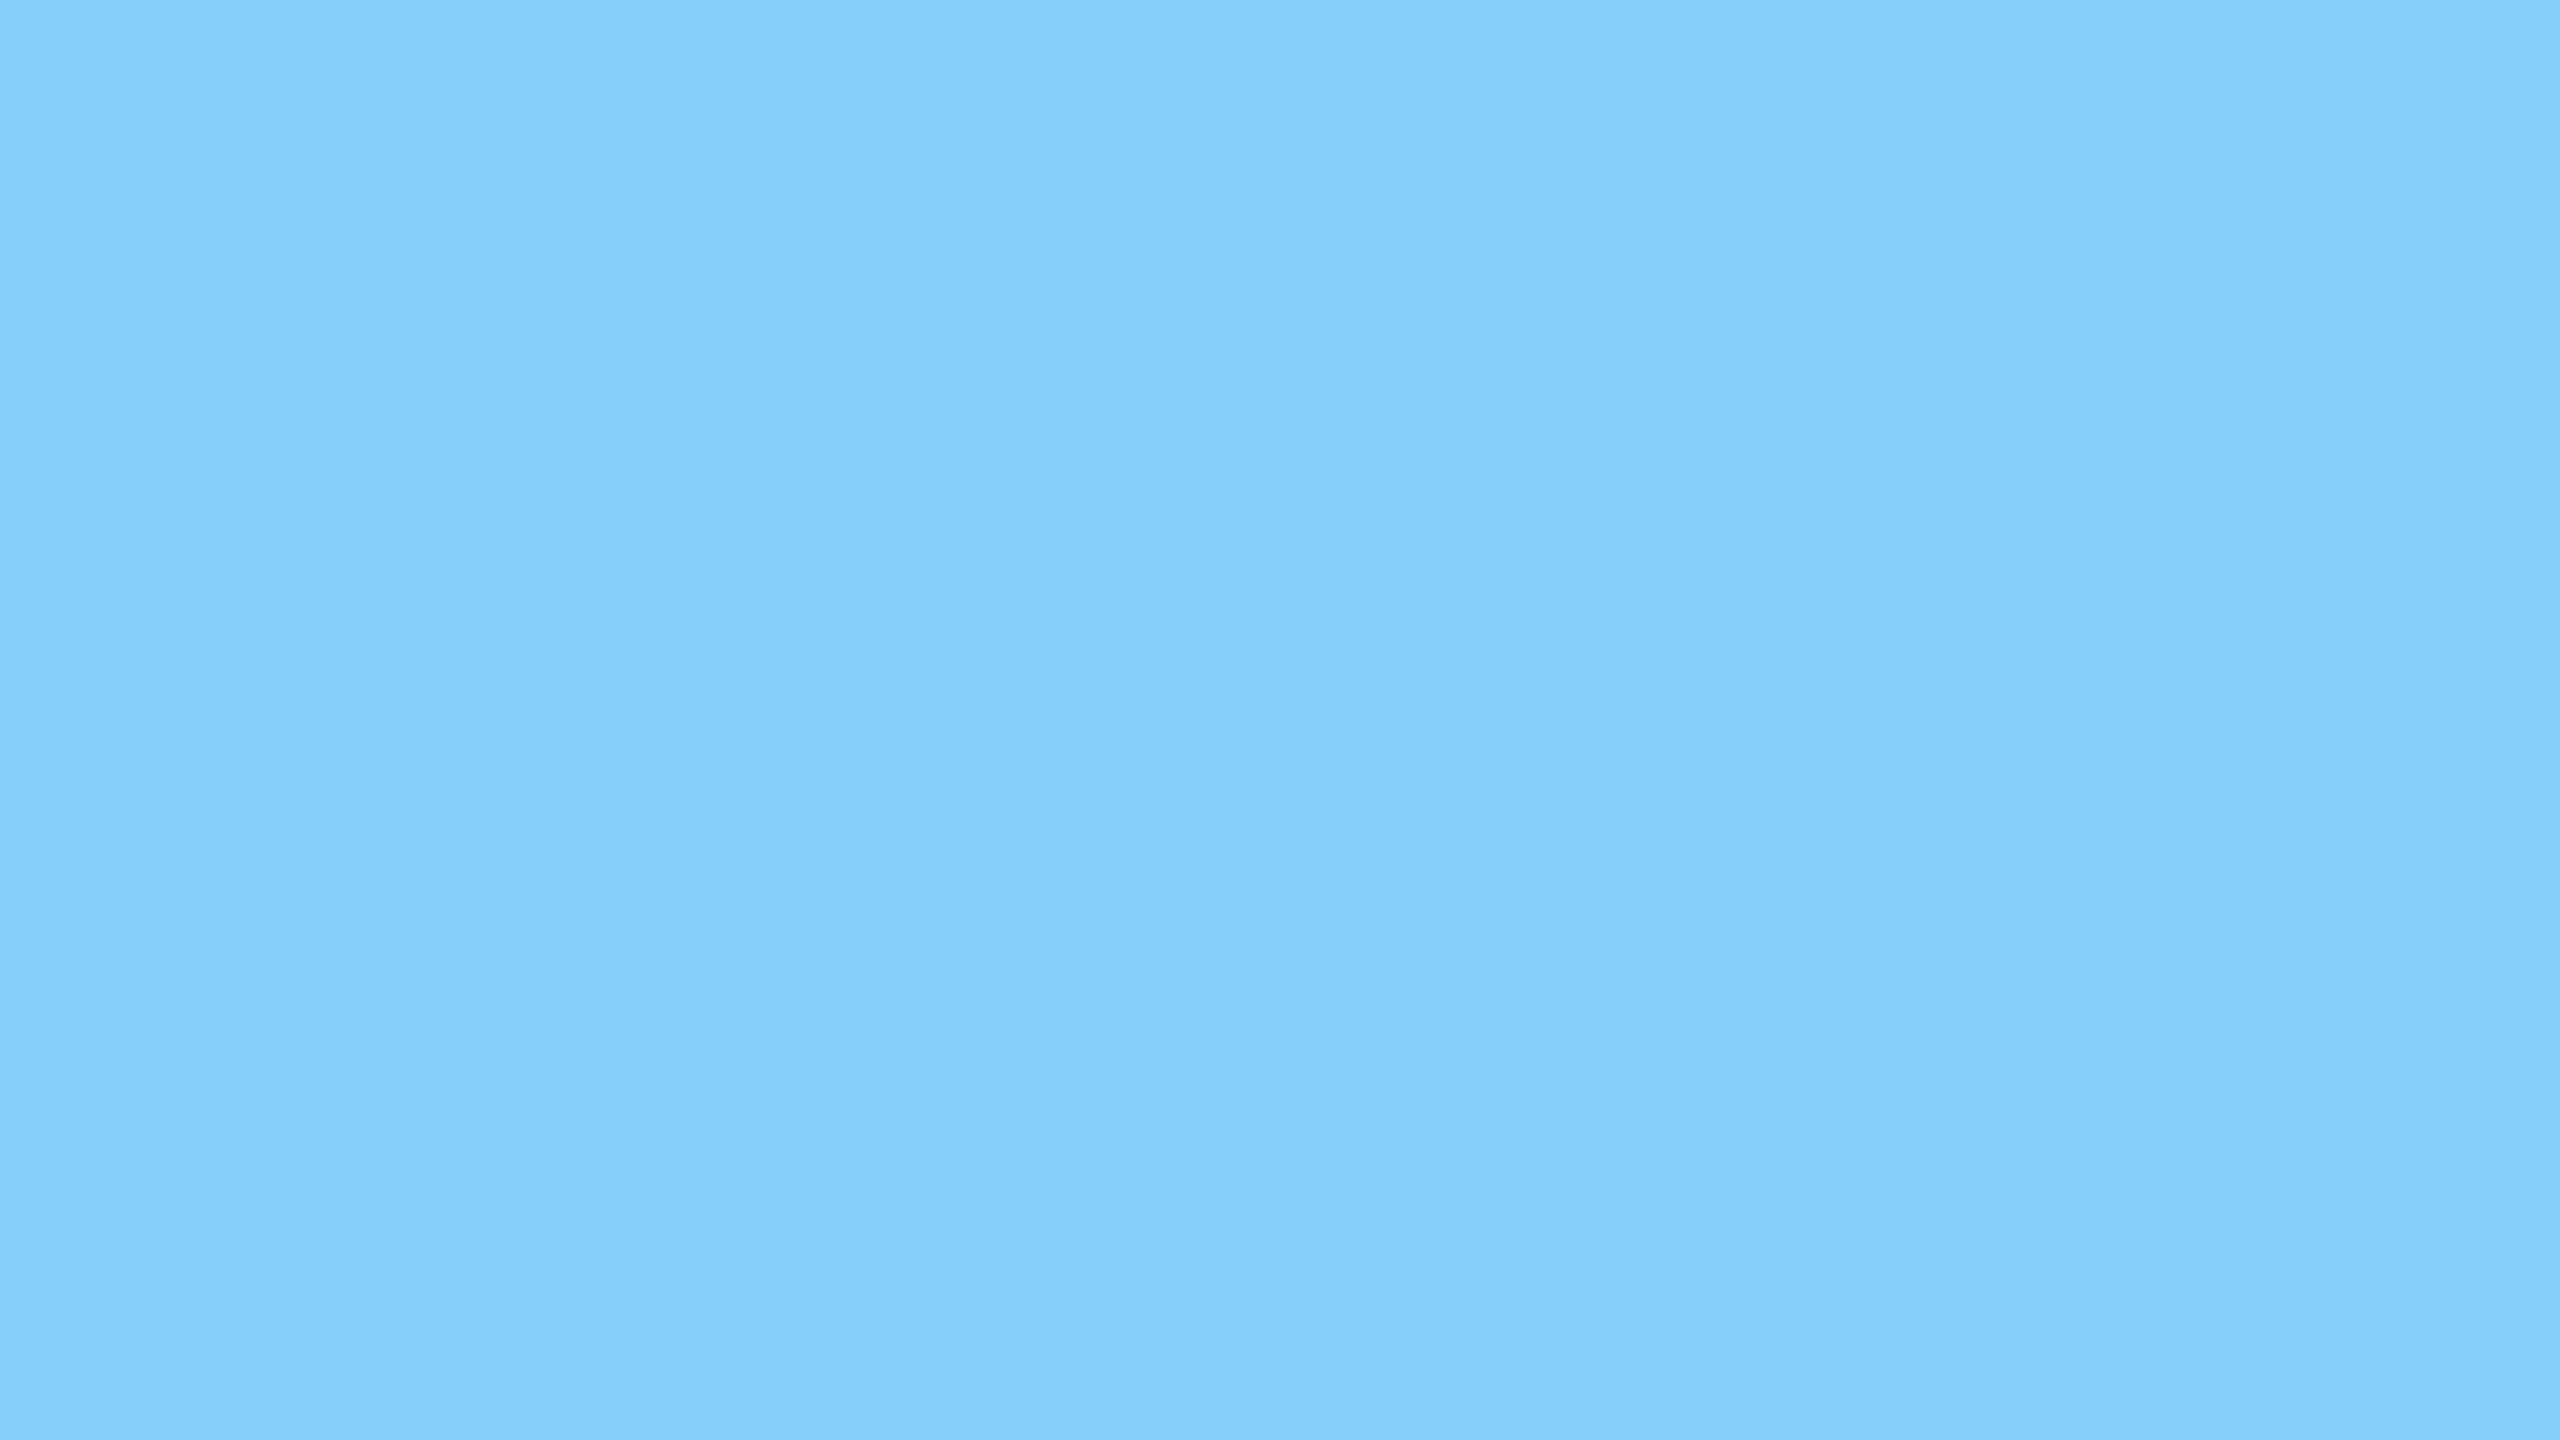 2560x1440 Light Sky Blue Solid Color Background